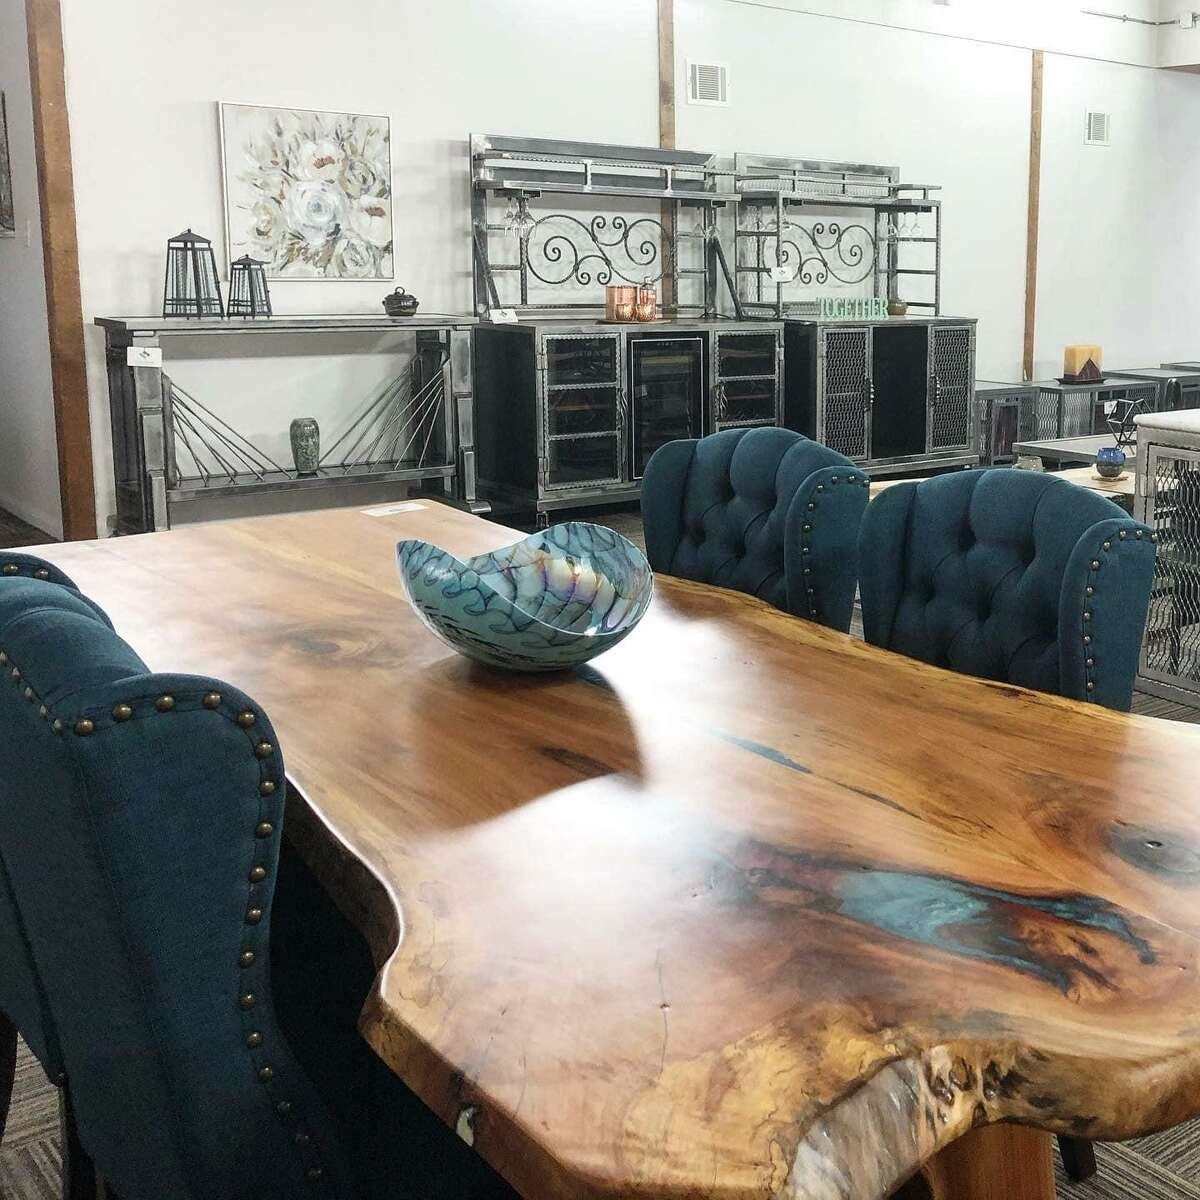 Superior Metal Designs in Pearland and specializes in custom furnishings.